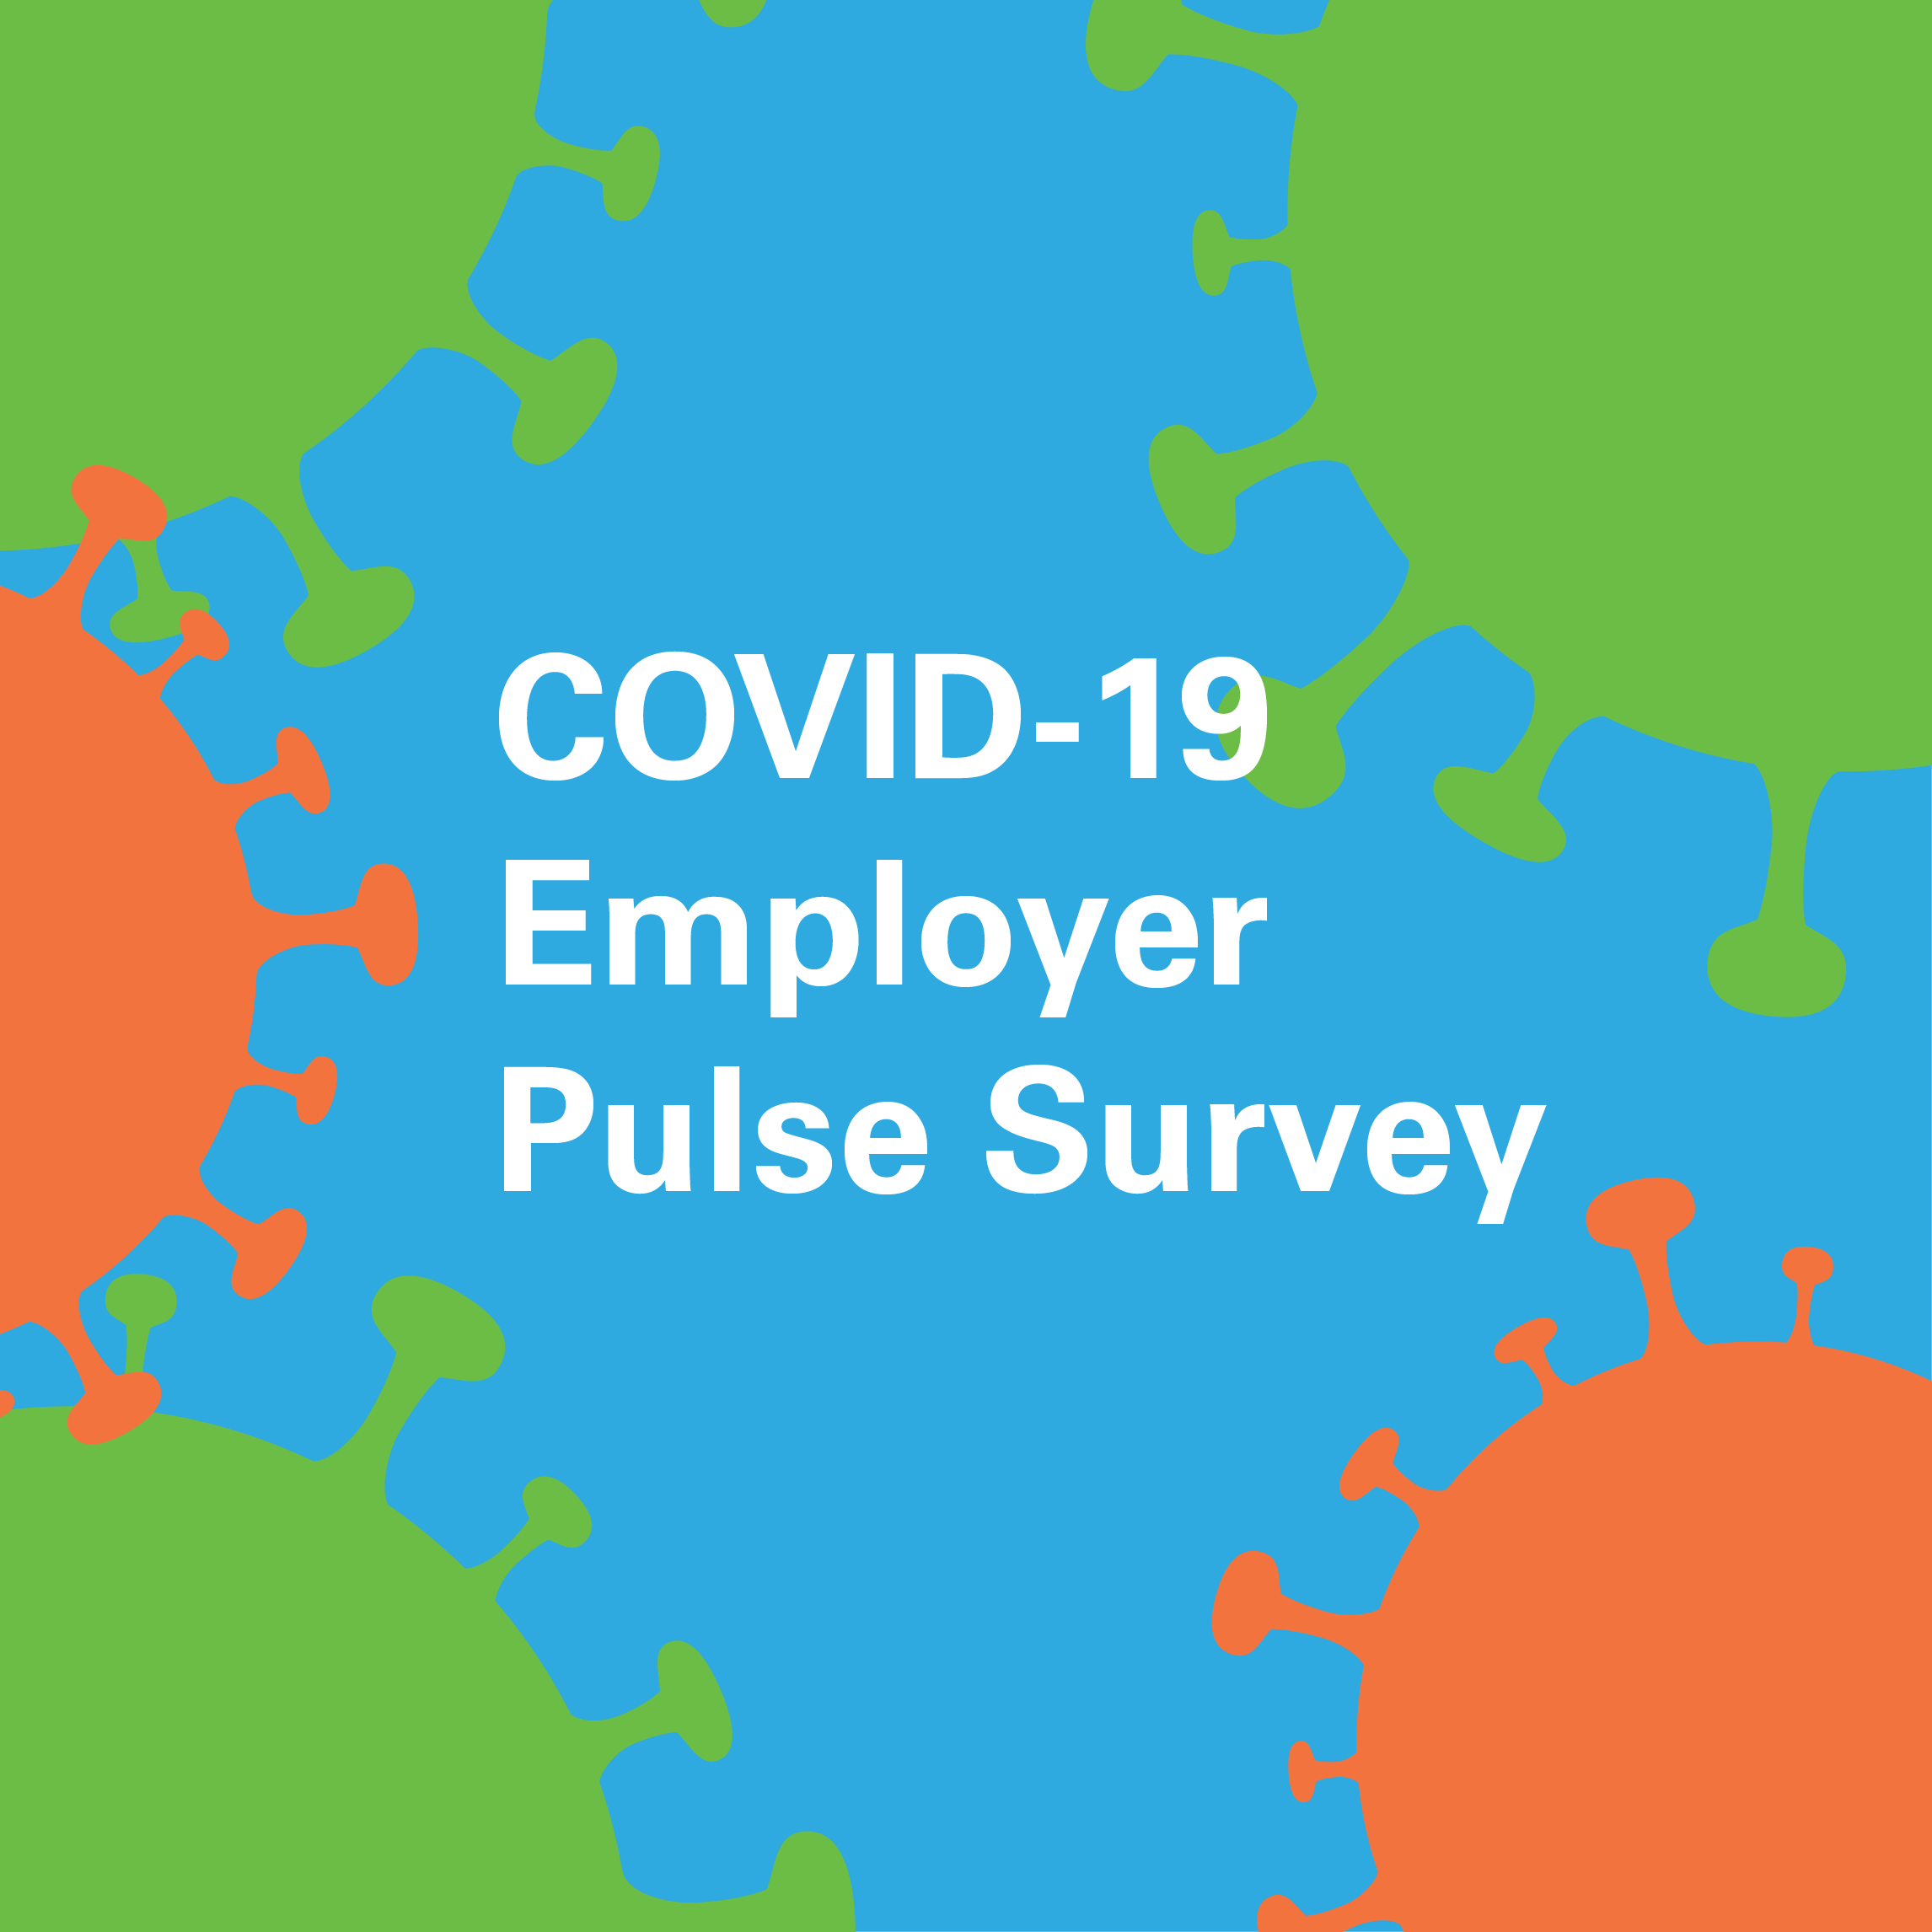 covid-19 employer pulse survey